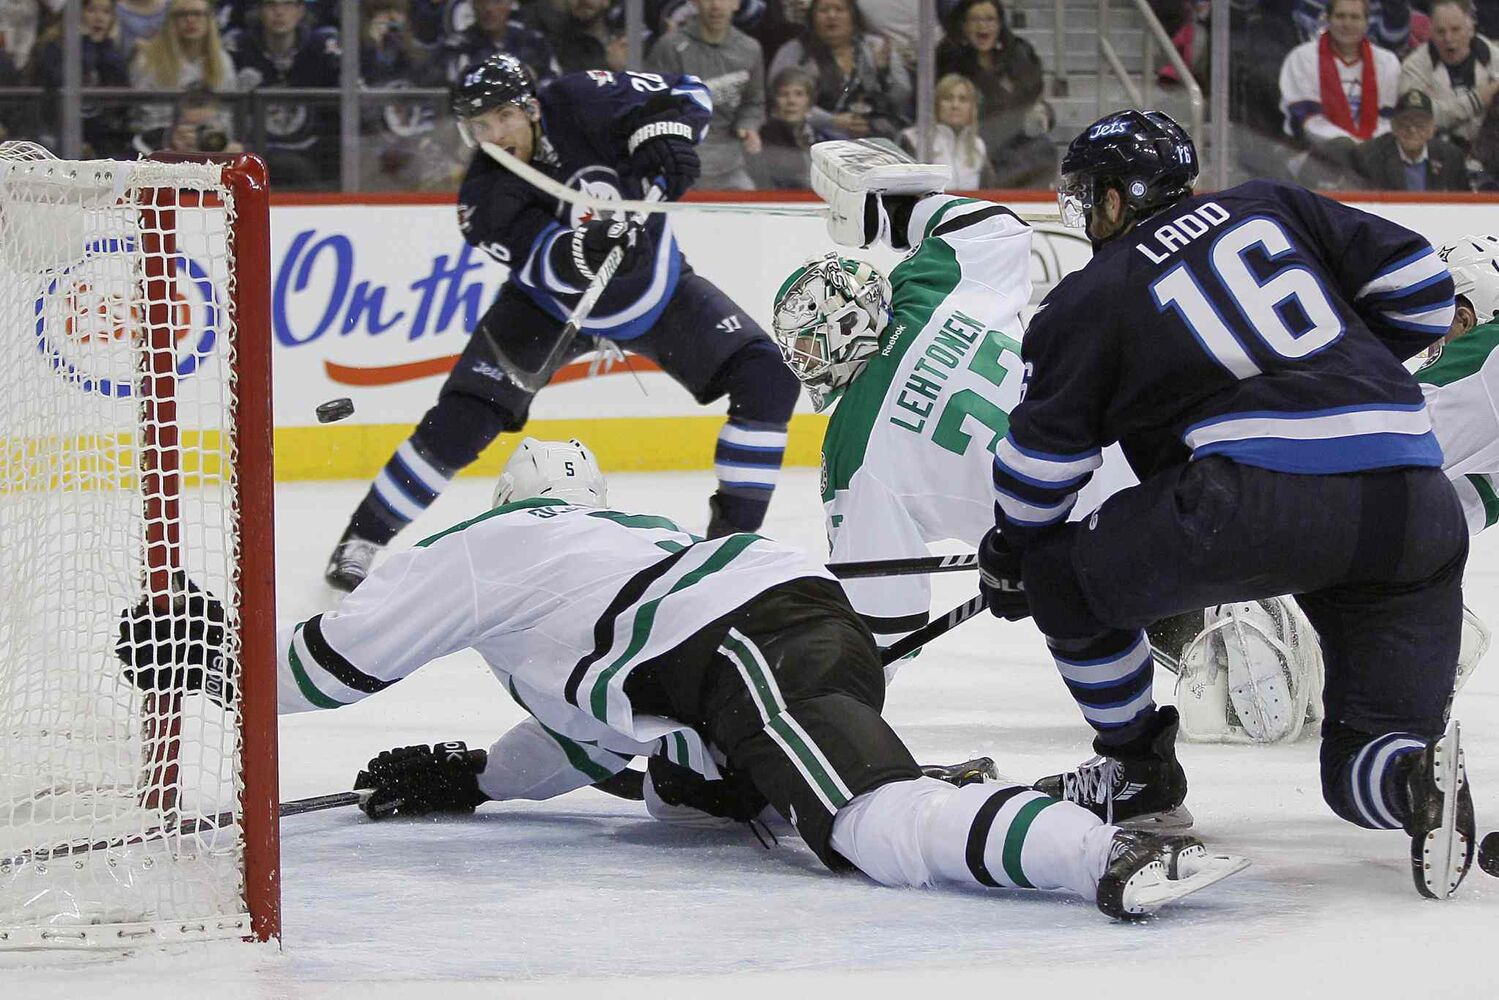 Blake Wheeler (top) puts the puck past Jamie Oleksiak (bottom) and goaltender Kari Lehtonen (centre right) as Andrew Ladd looks on during the second period. (JOHN WOODS / THE CANADIAN PRESS)